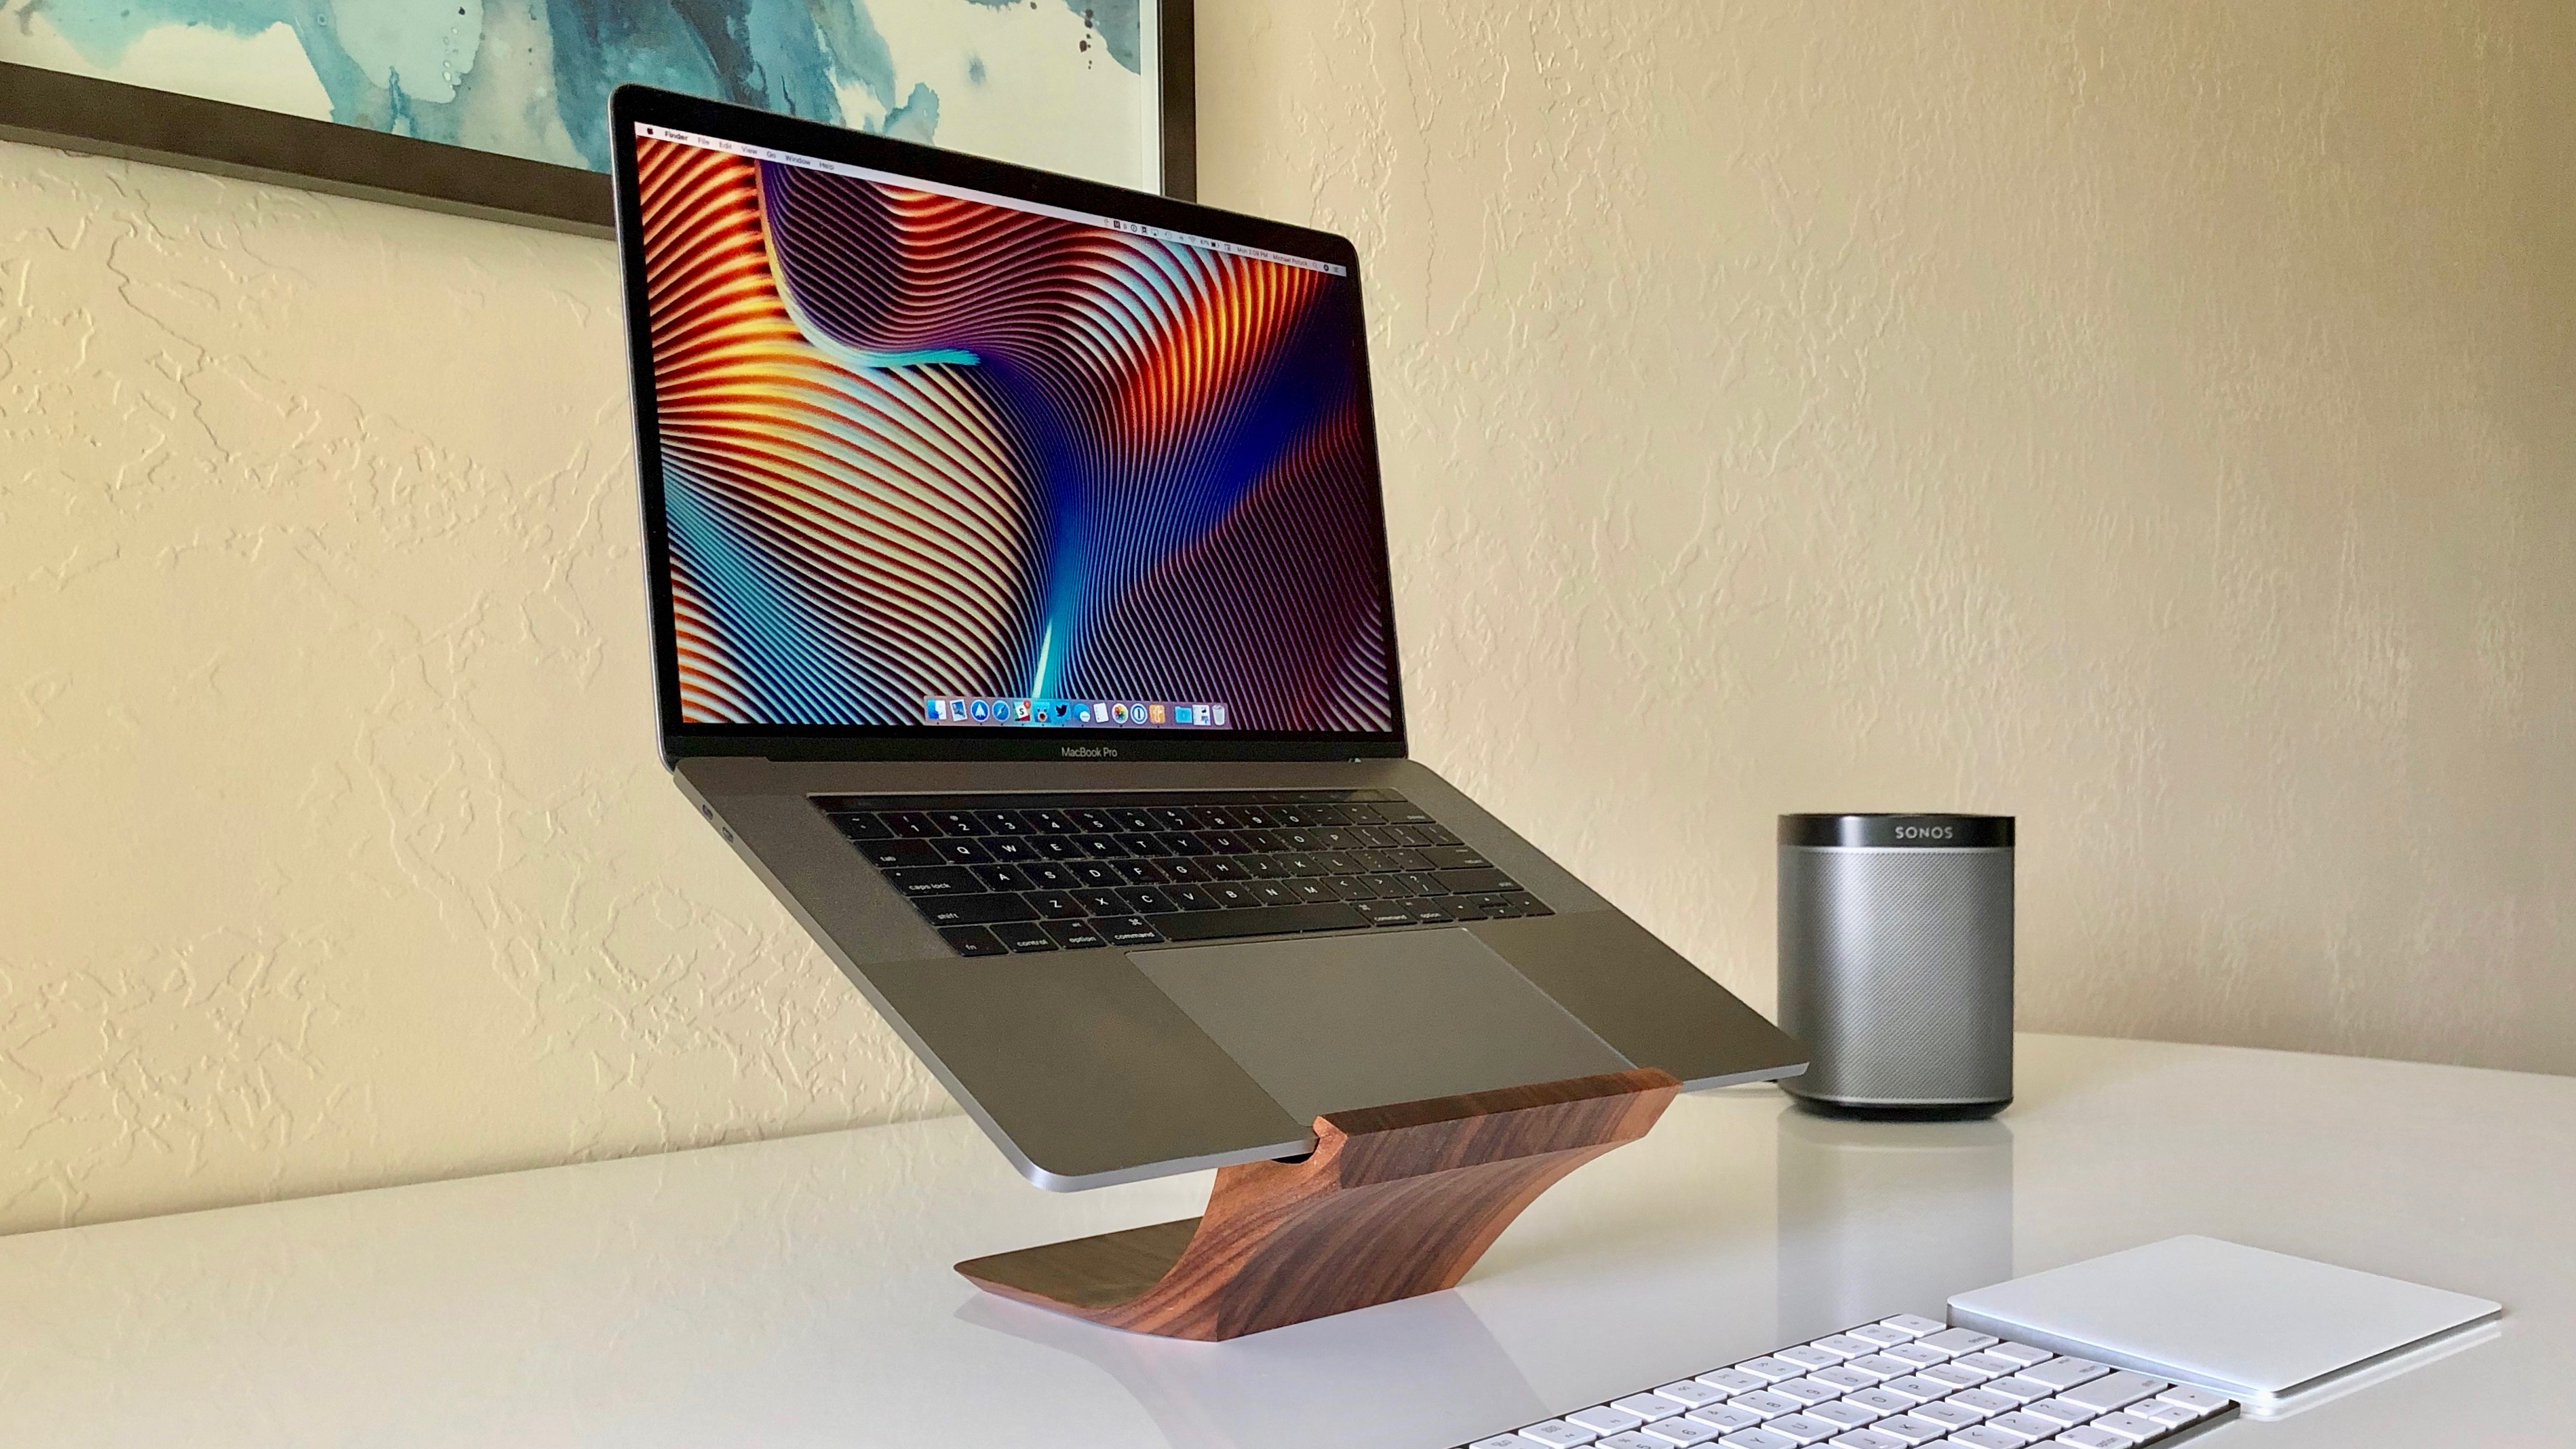 Review: Yohann's MacBook Pro and MacBook Stand is a beautiful addition to your setup